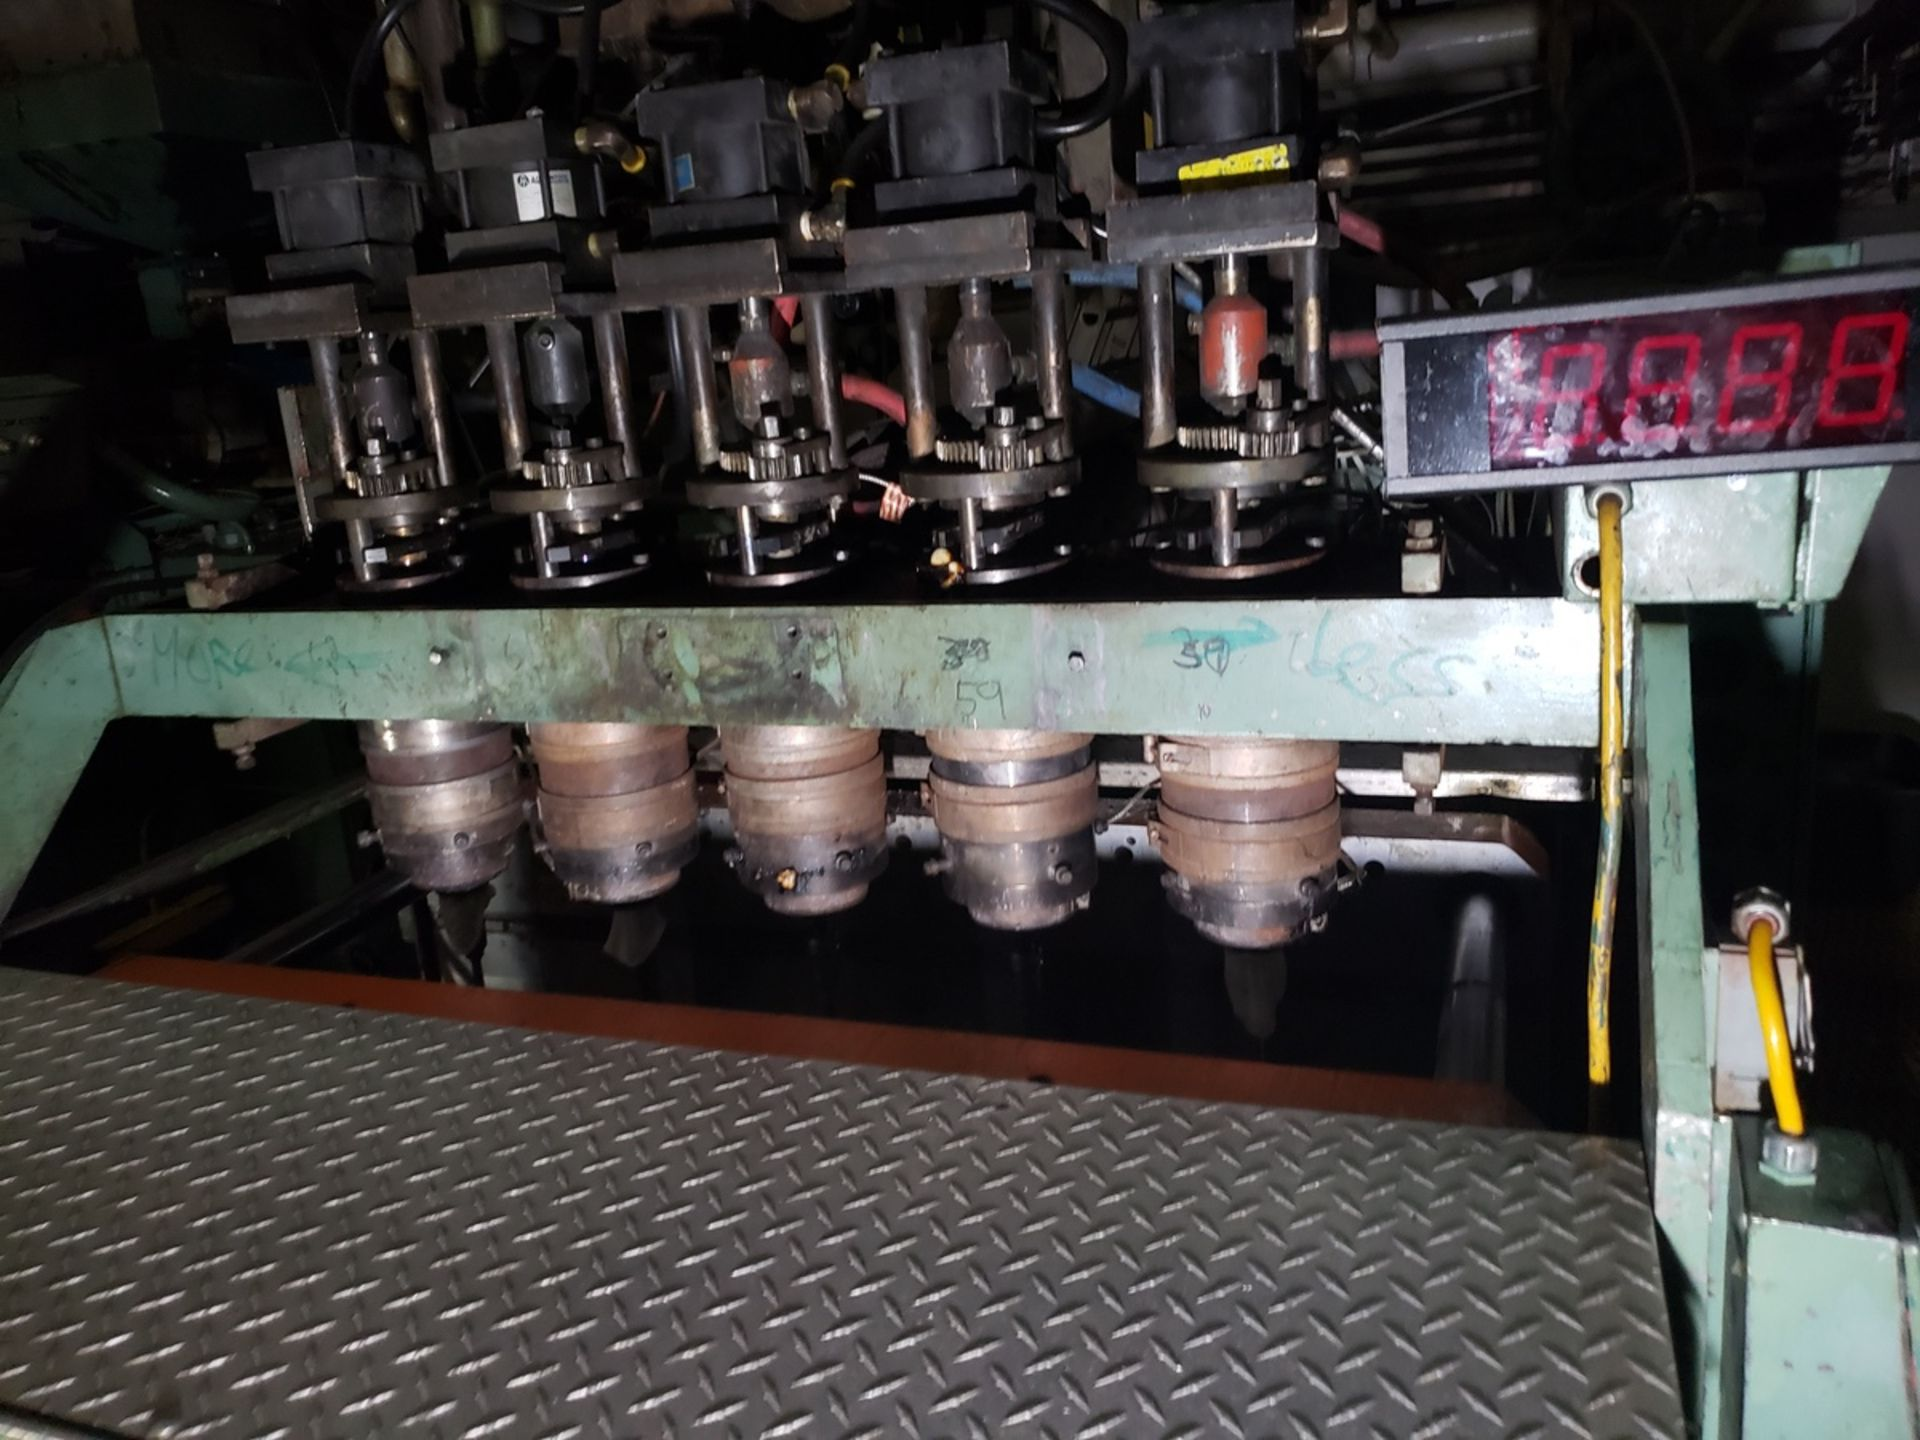 Uniloy 5 Head Blow Molding Machine, M# 350R1, S/N 350R1-2431 | Rig Fee: $14500 - Image 3 of 4